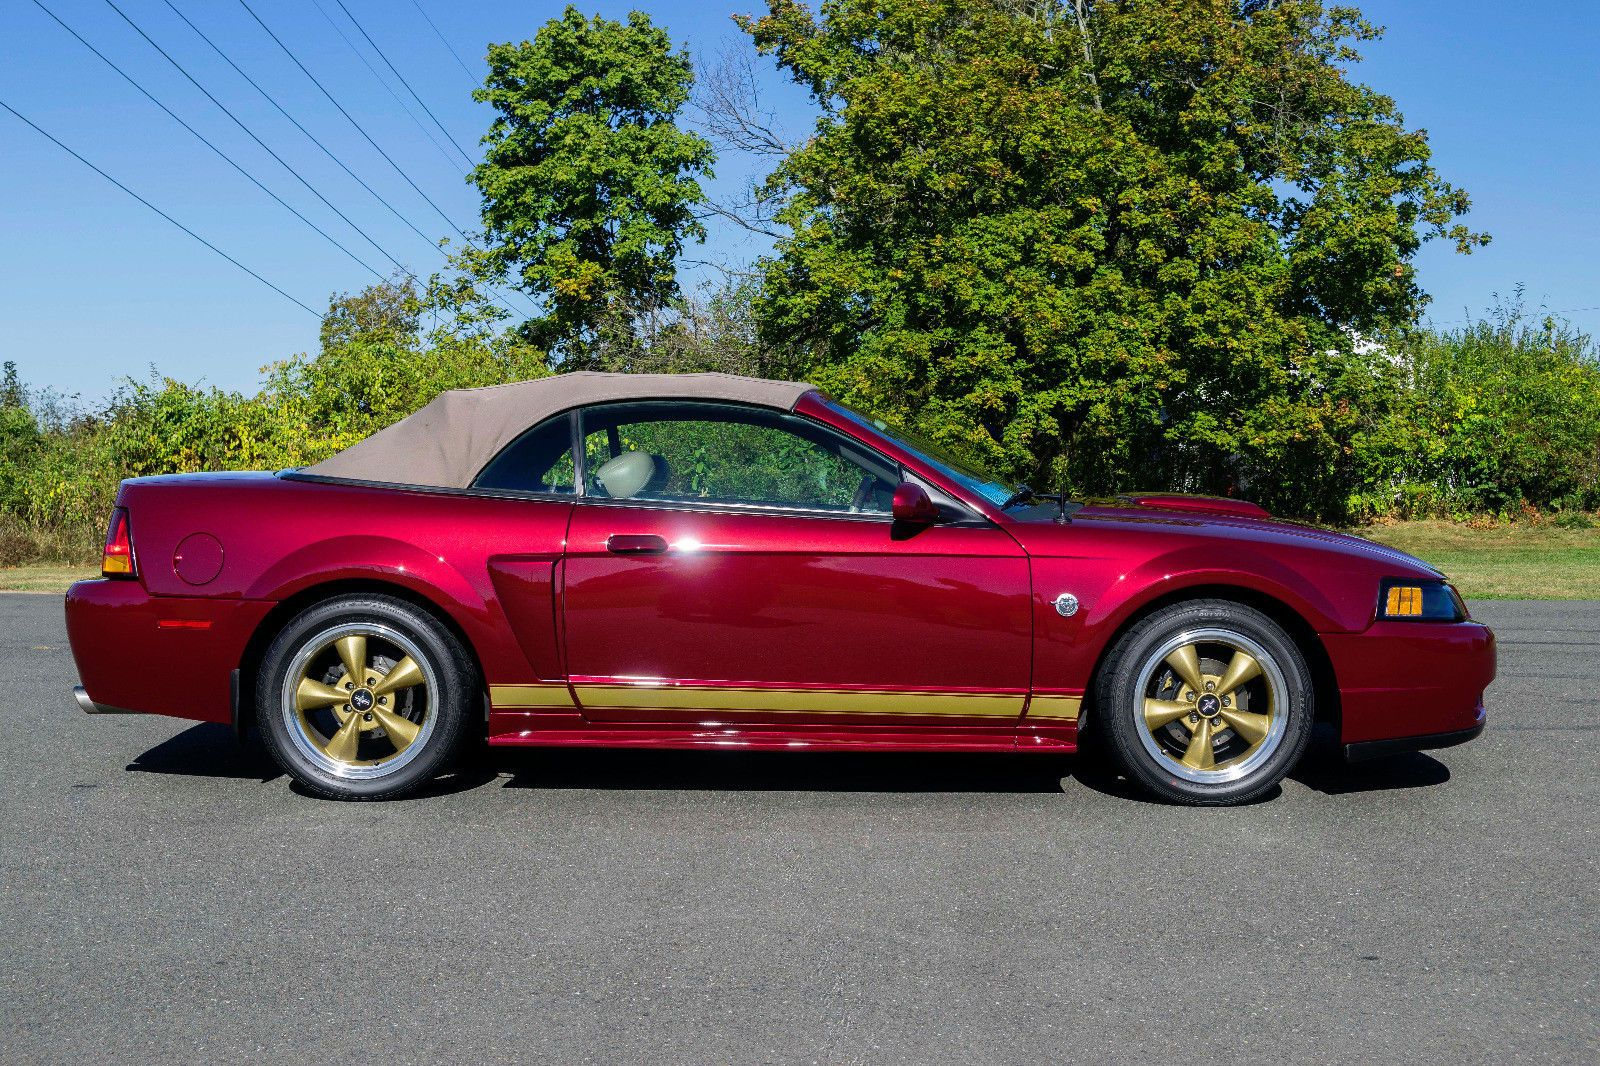 Ford mustang th anniversary